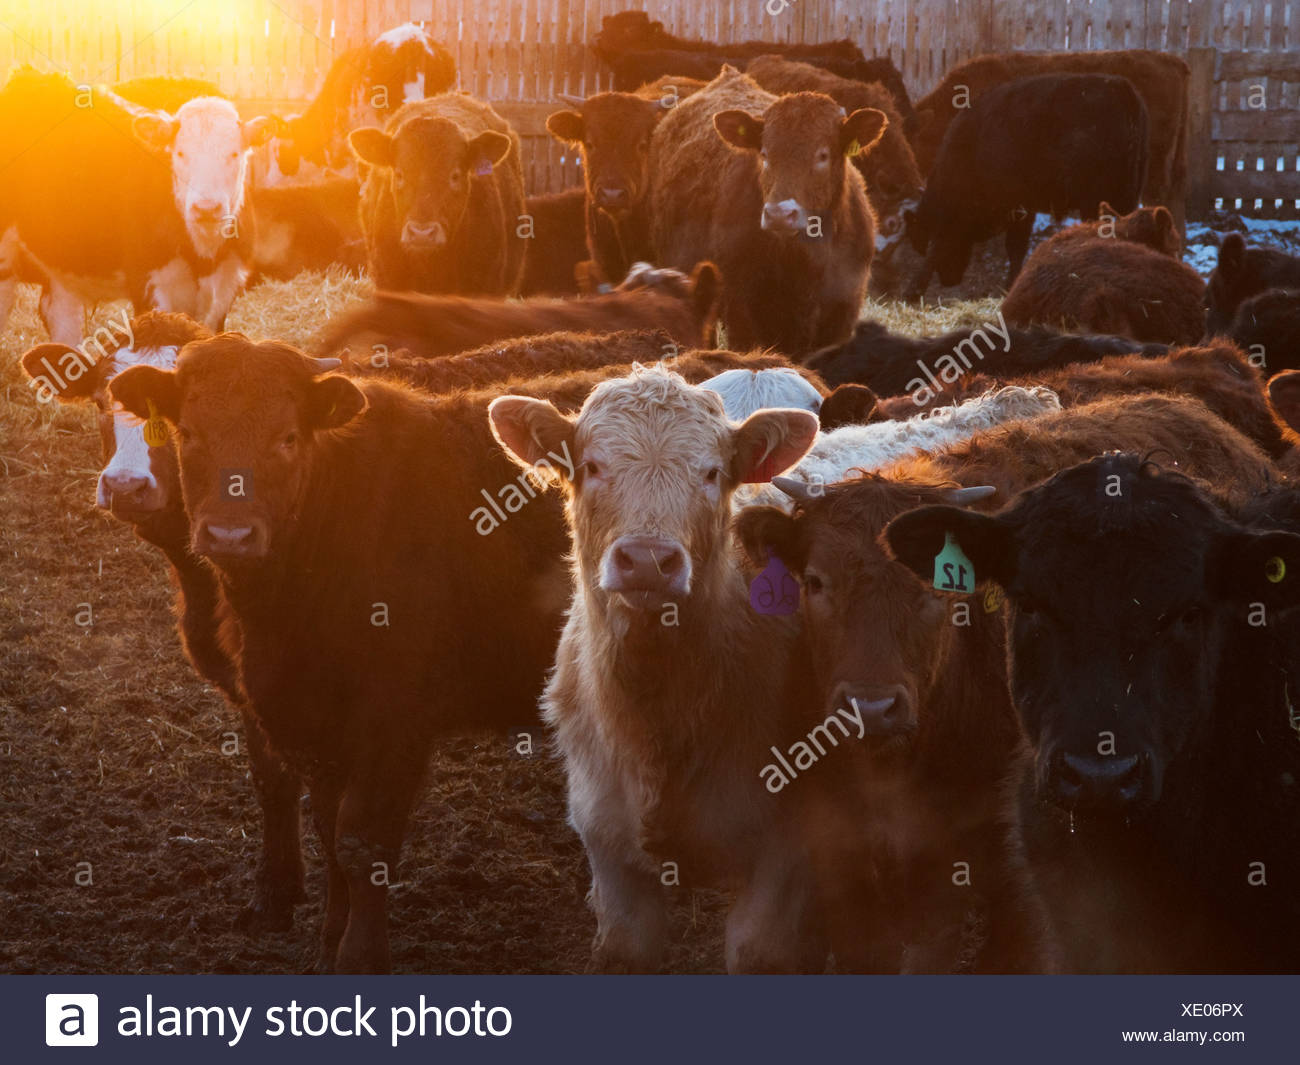 Livestock - Crossbred and mixed breeds of beef cattle in a feedlot pen at sunset / Alberta, Canada. Stock Photo